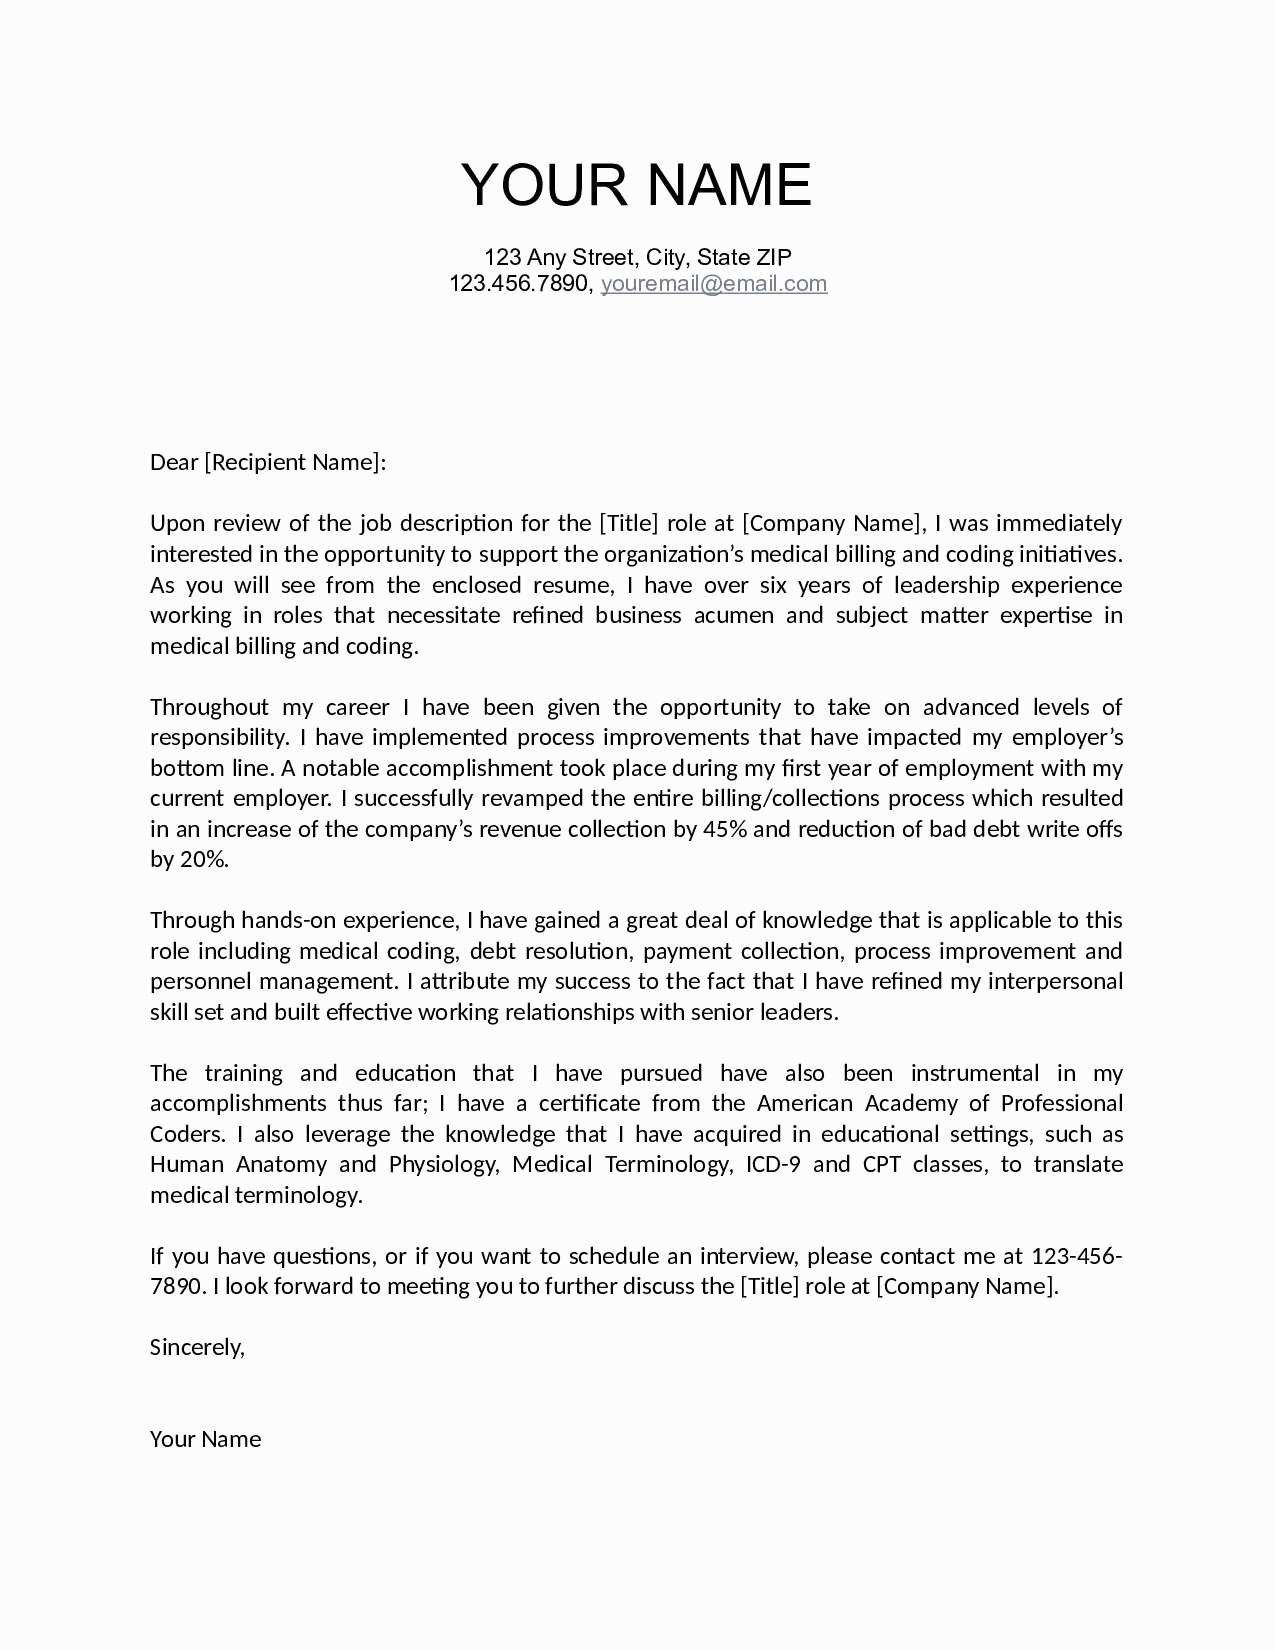 Self Storage Rent Increase Letter Template - Cover Letter Sample for Bookstore Job Fresh Inspirational Job Fer